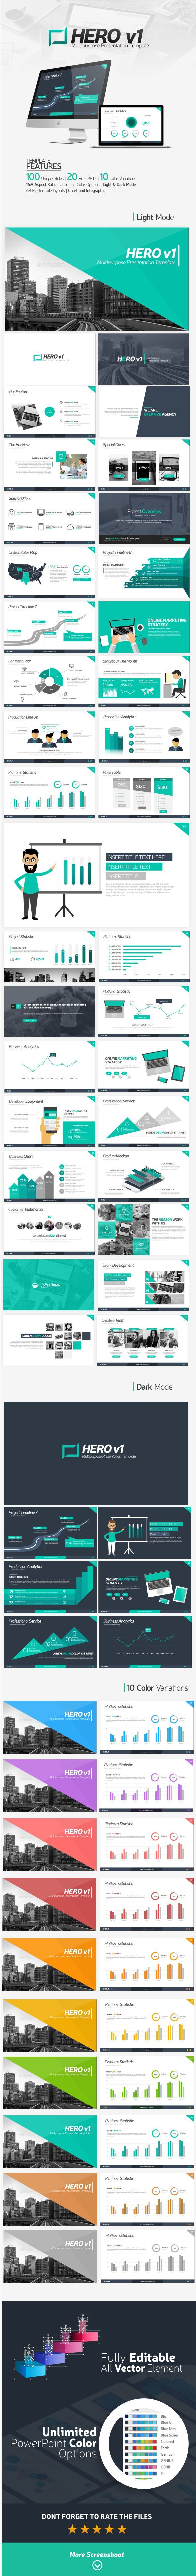 HERO v1 Presentation Template. Download here: http://graphicriver.net/item/hero-v1-presentation-template/16318628?ref=ksioks